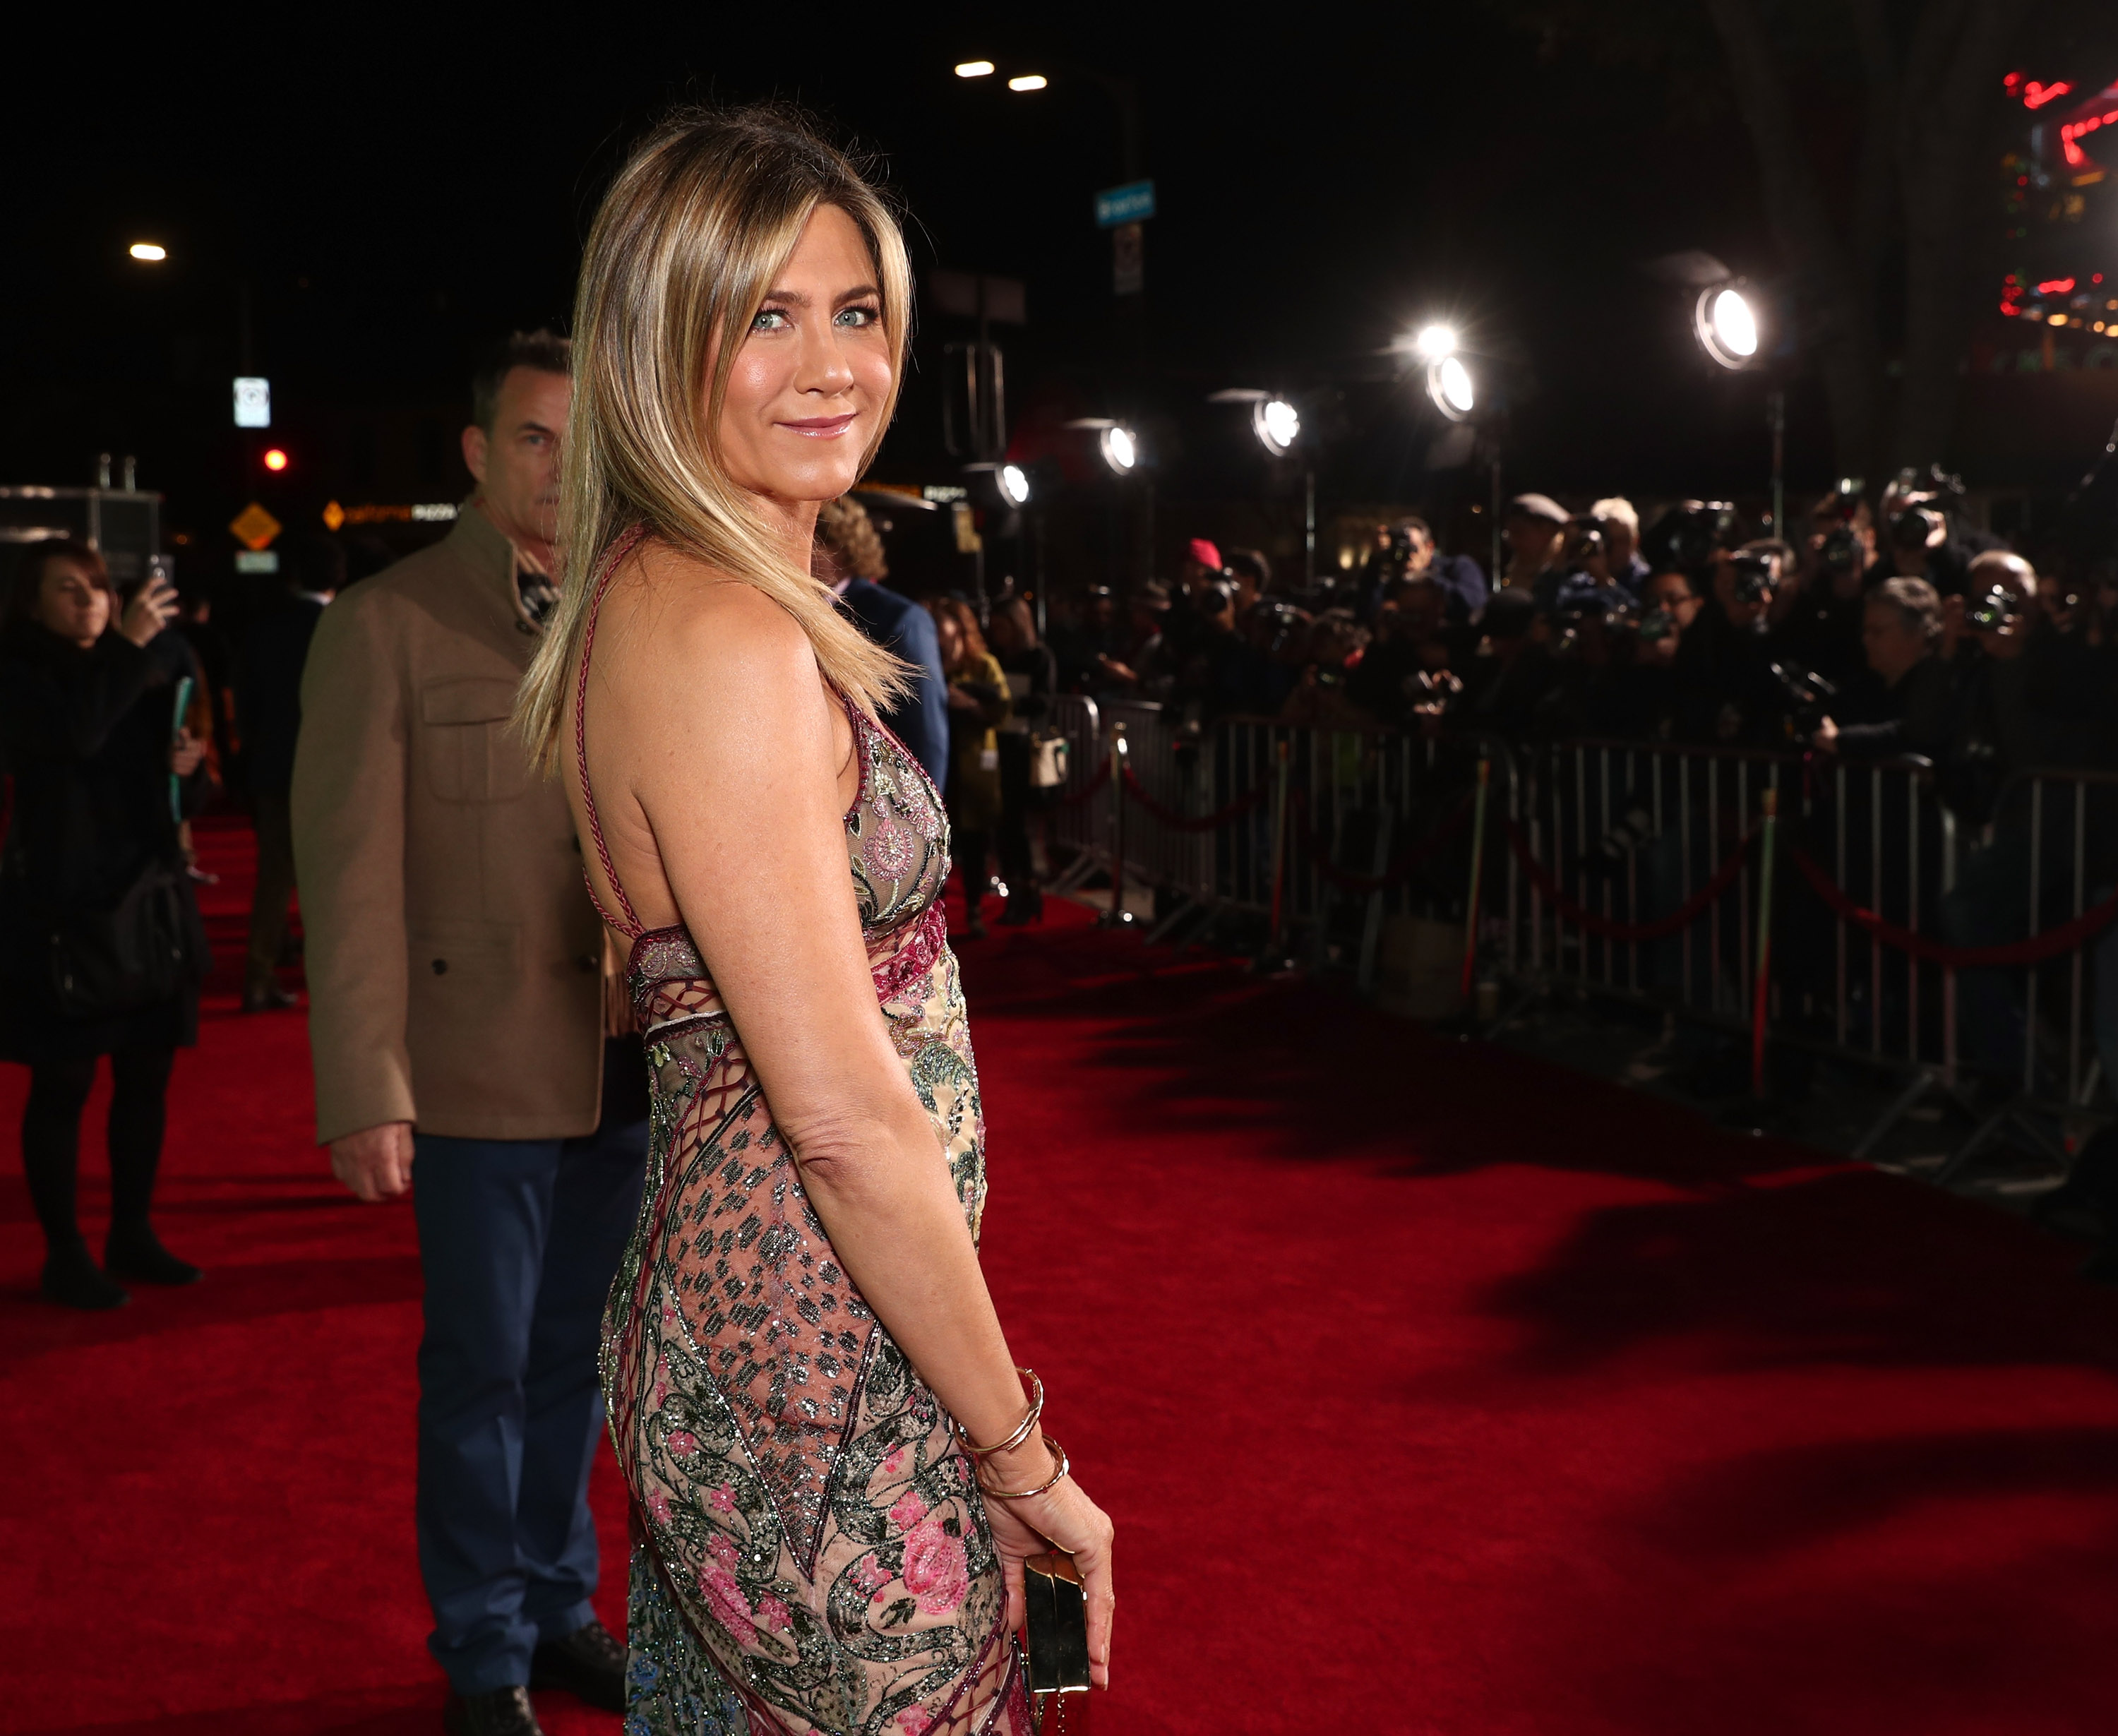 Jennifer Aniston tells Chelsea Handler that she wants to play a superhero — but there's one catch